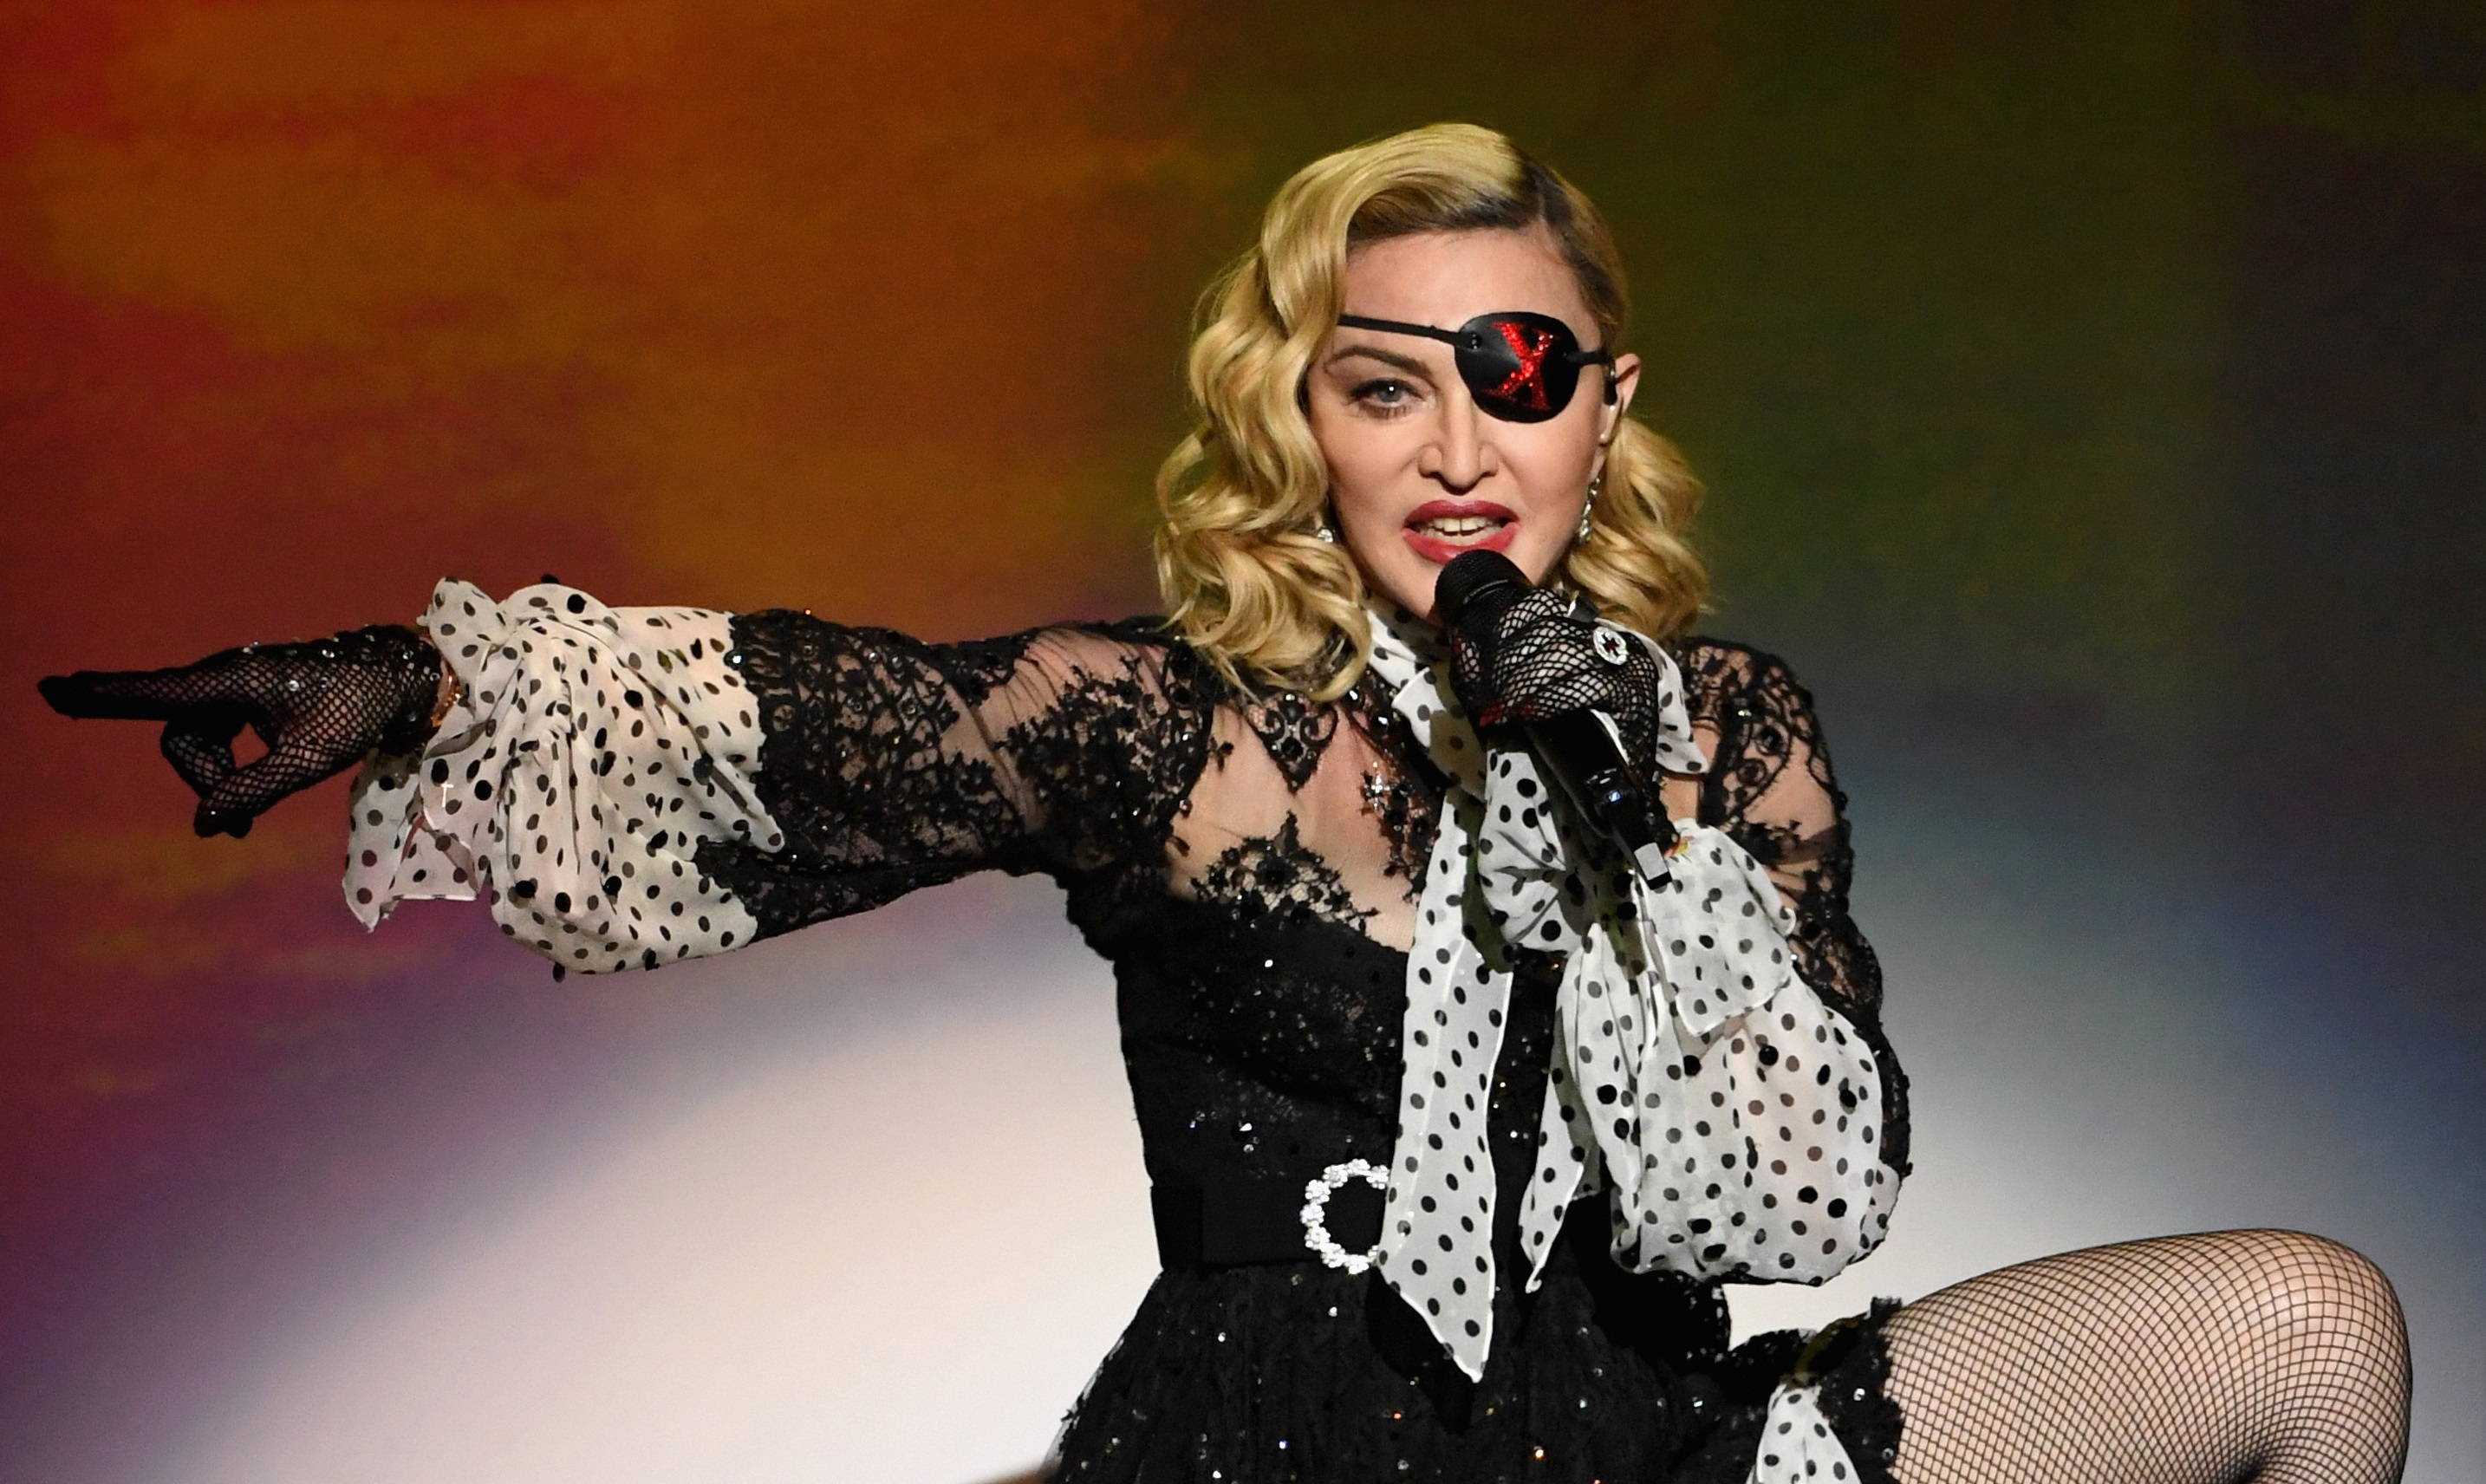 Madonna Cleared to Perform Two Songs at Eurovision in Tel Aviv